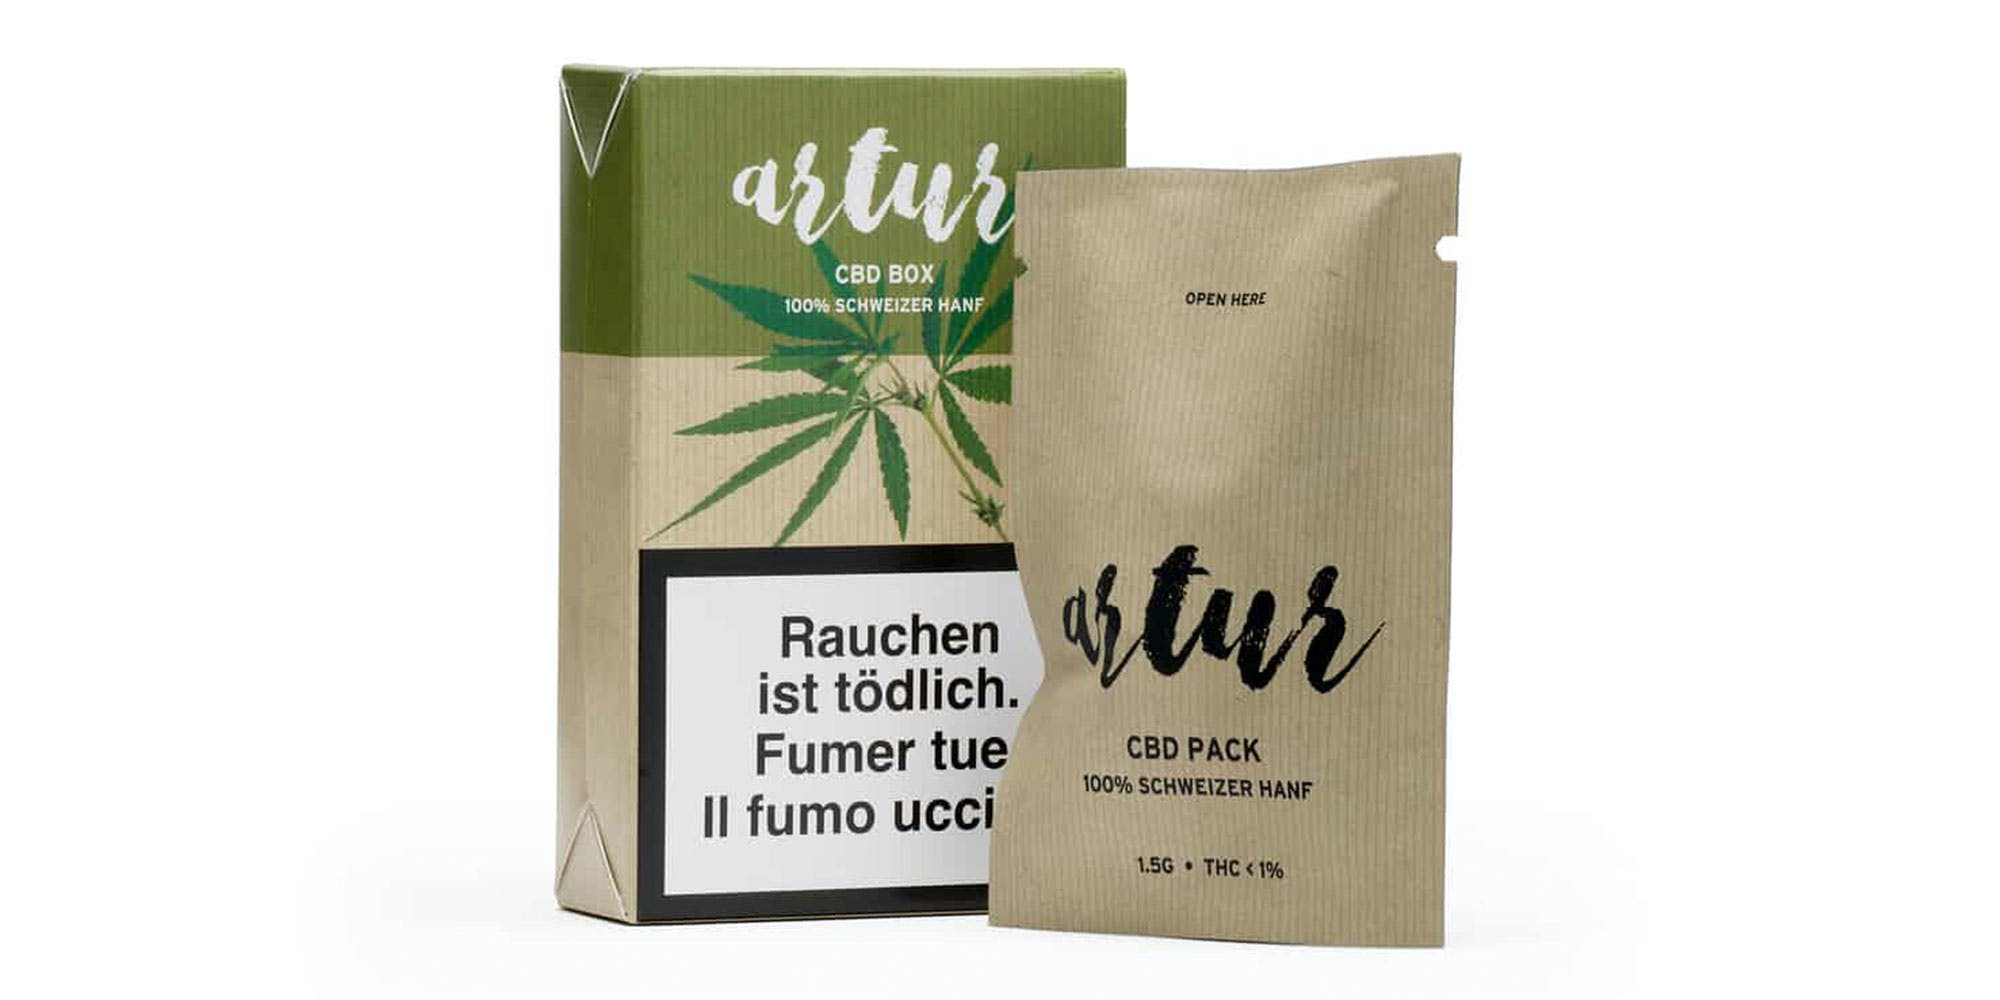 CBDBanner1 Cannabis Cafes In Paris Are Trying To Claim The Bud They Sell Isnt For Smoking